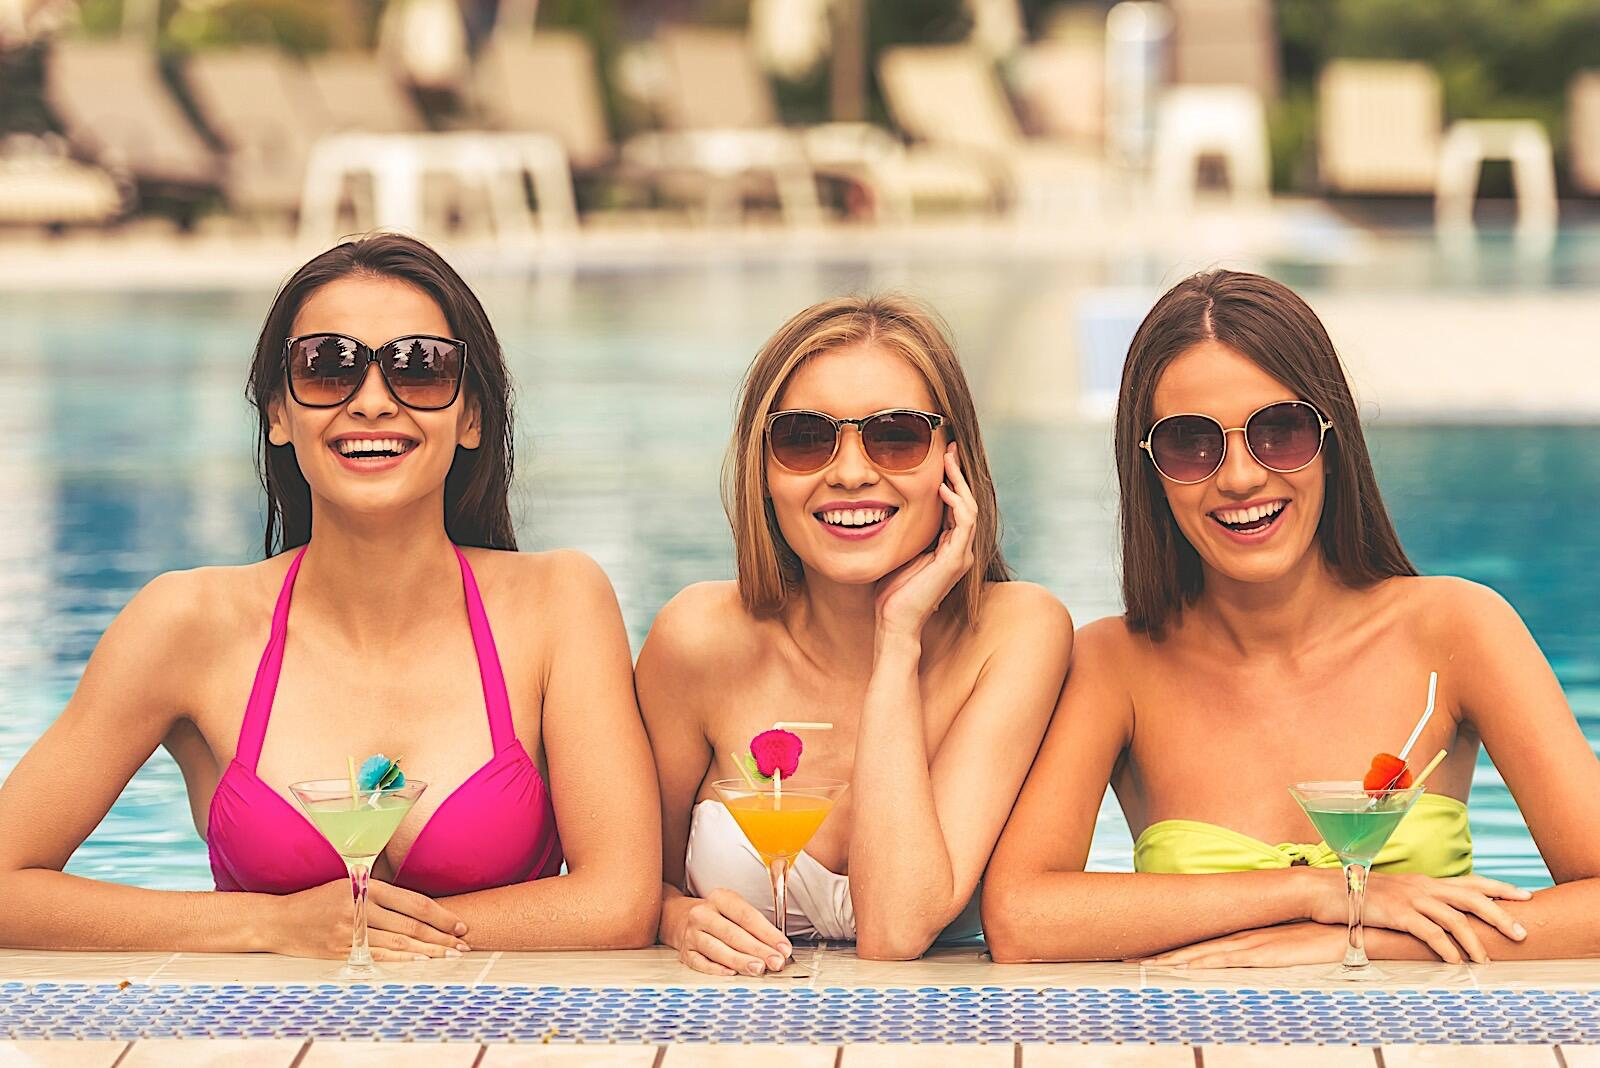 Three friends in an outdoor pool with martini glasses.